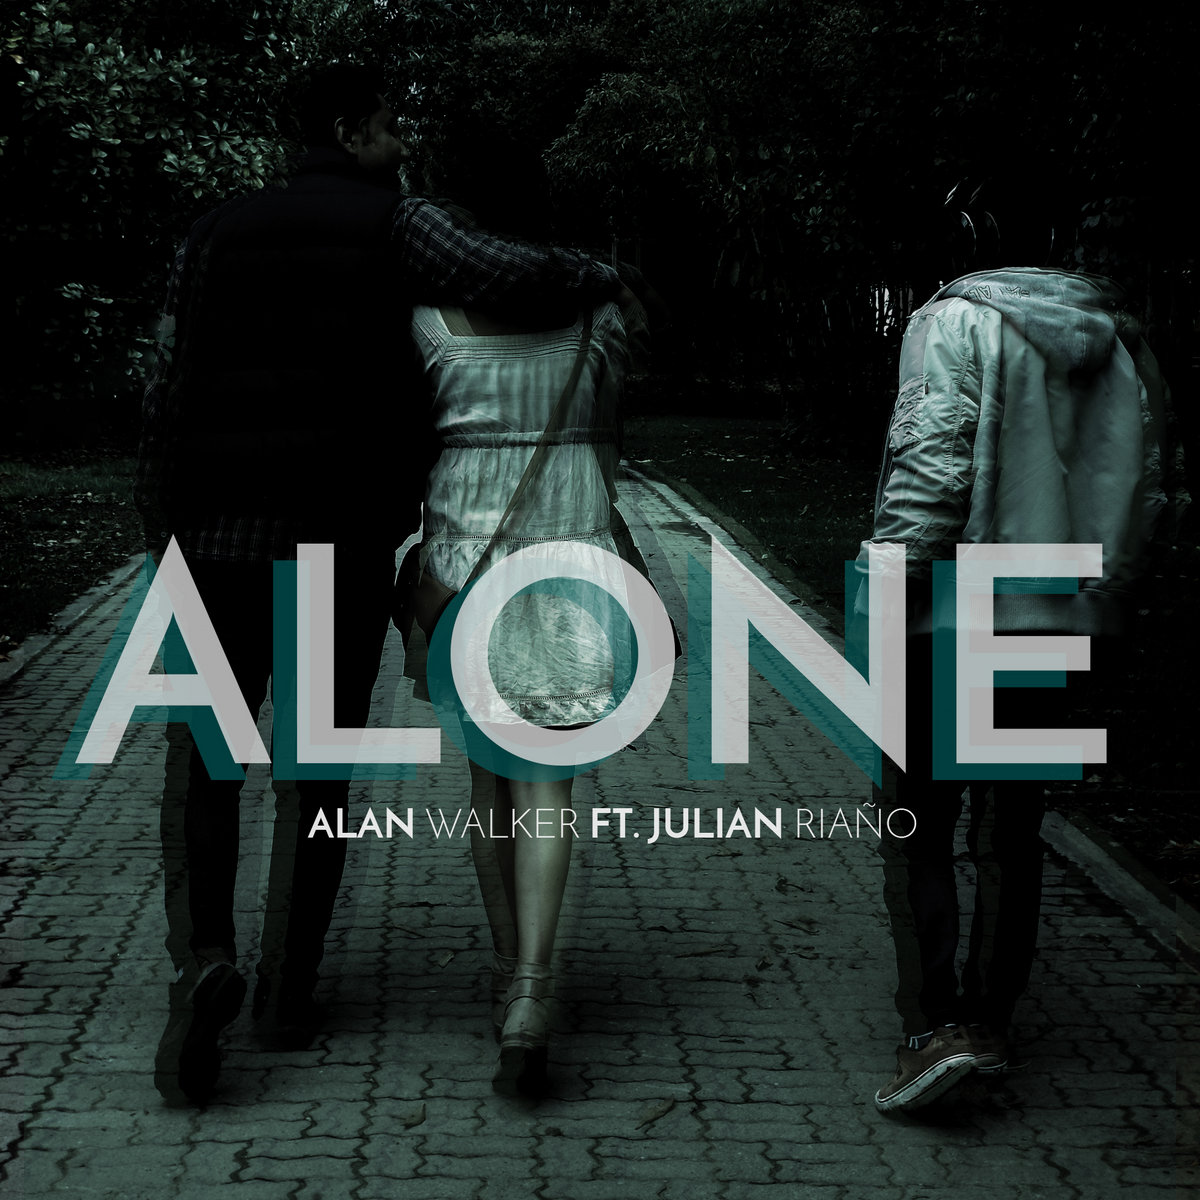 Taki Taki Full Song Downloadbin Mp3: Alone (feat. Julian Riaño)